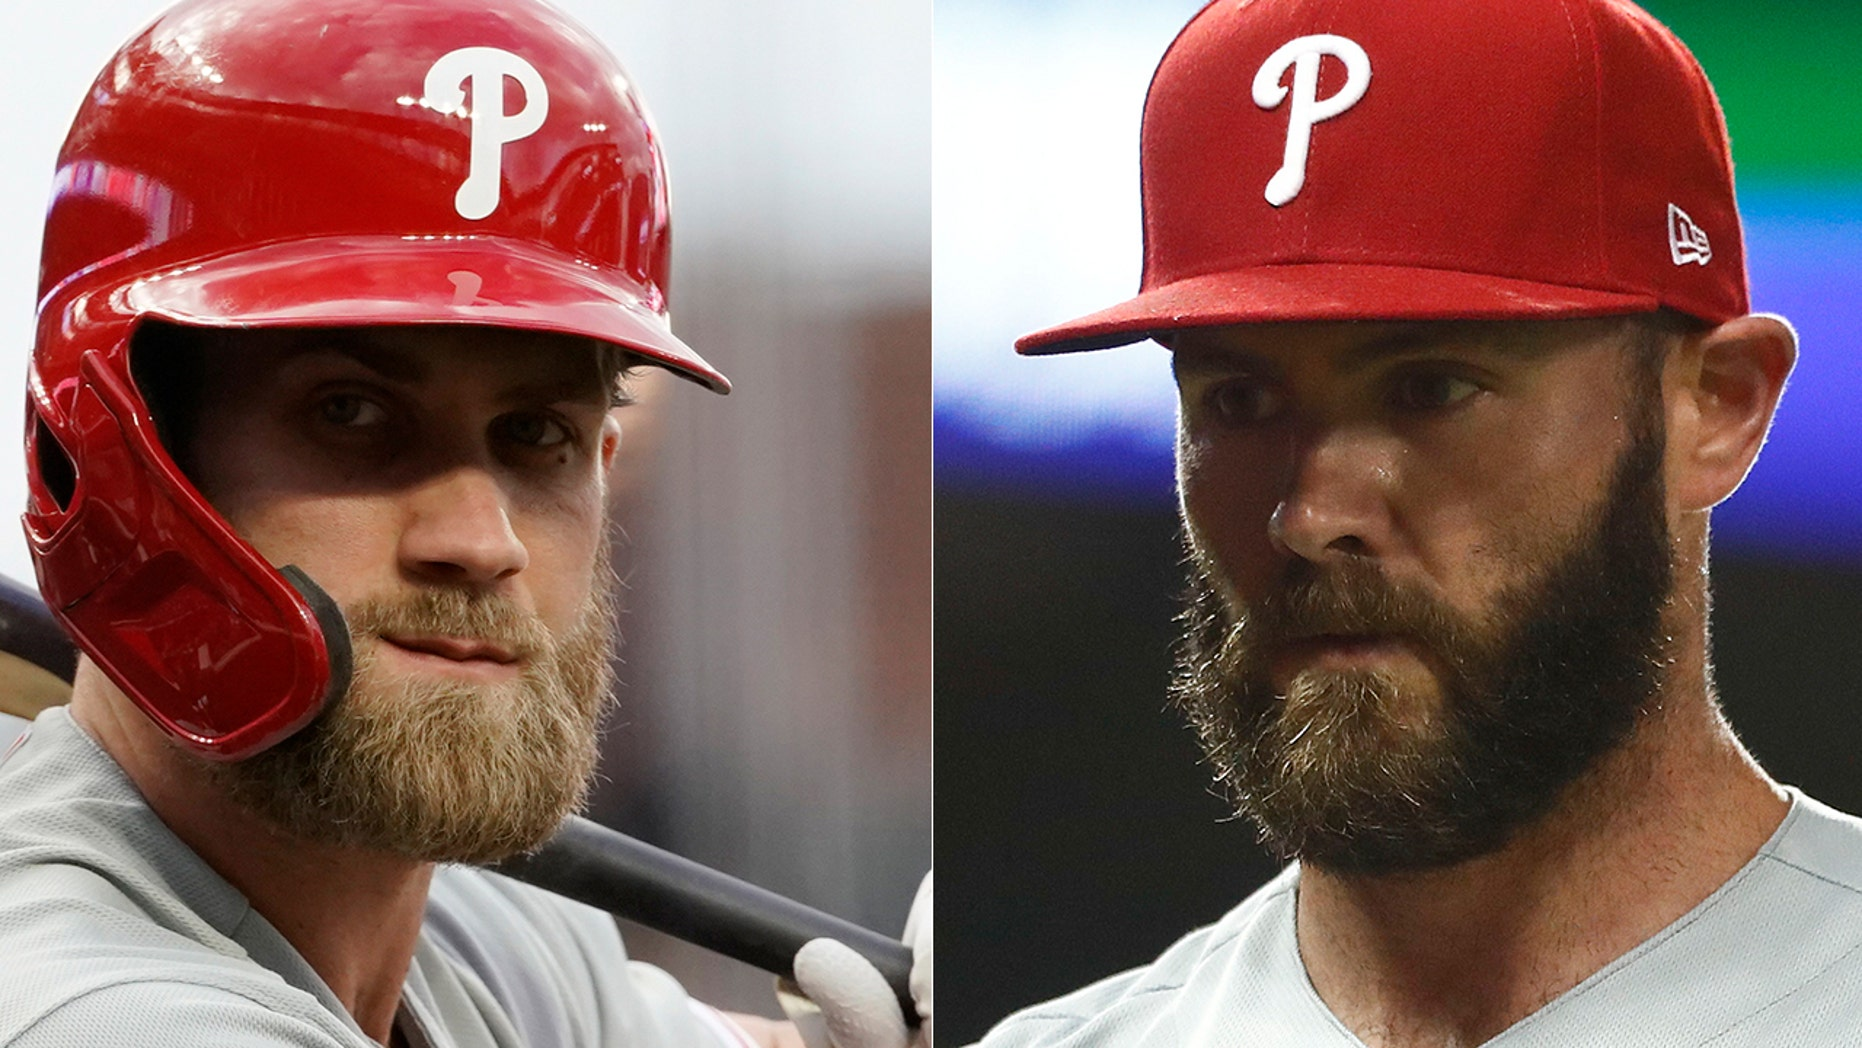 Bryce Harper was ejected from Monday's game much to the dismay of Jake Arrieta.